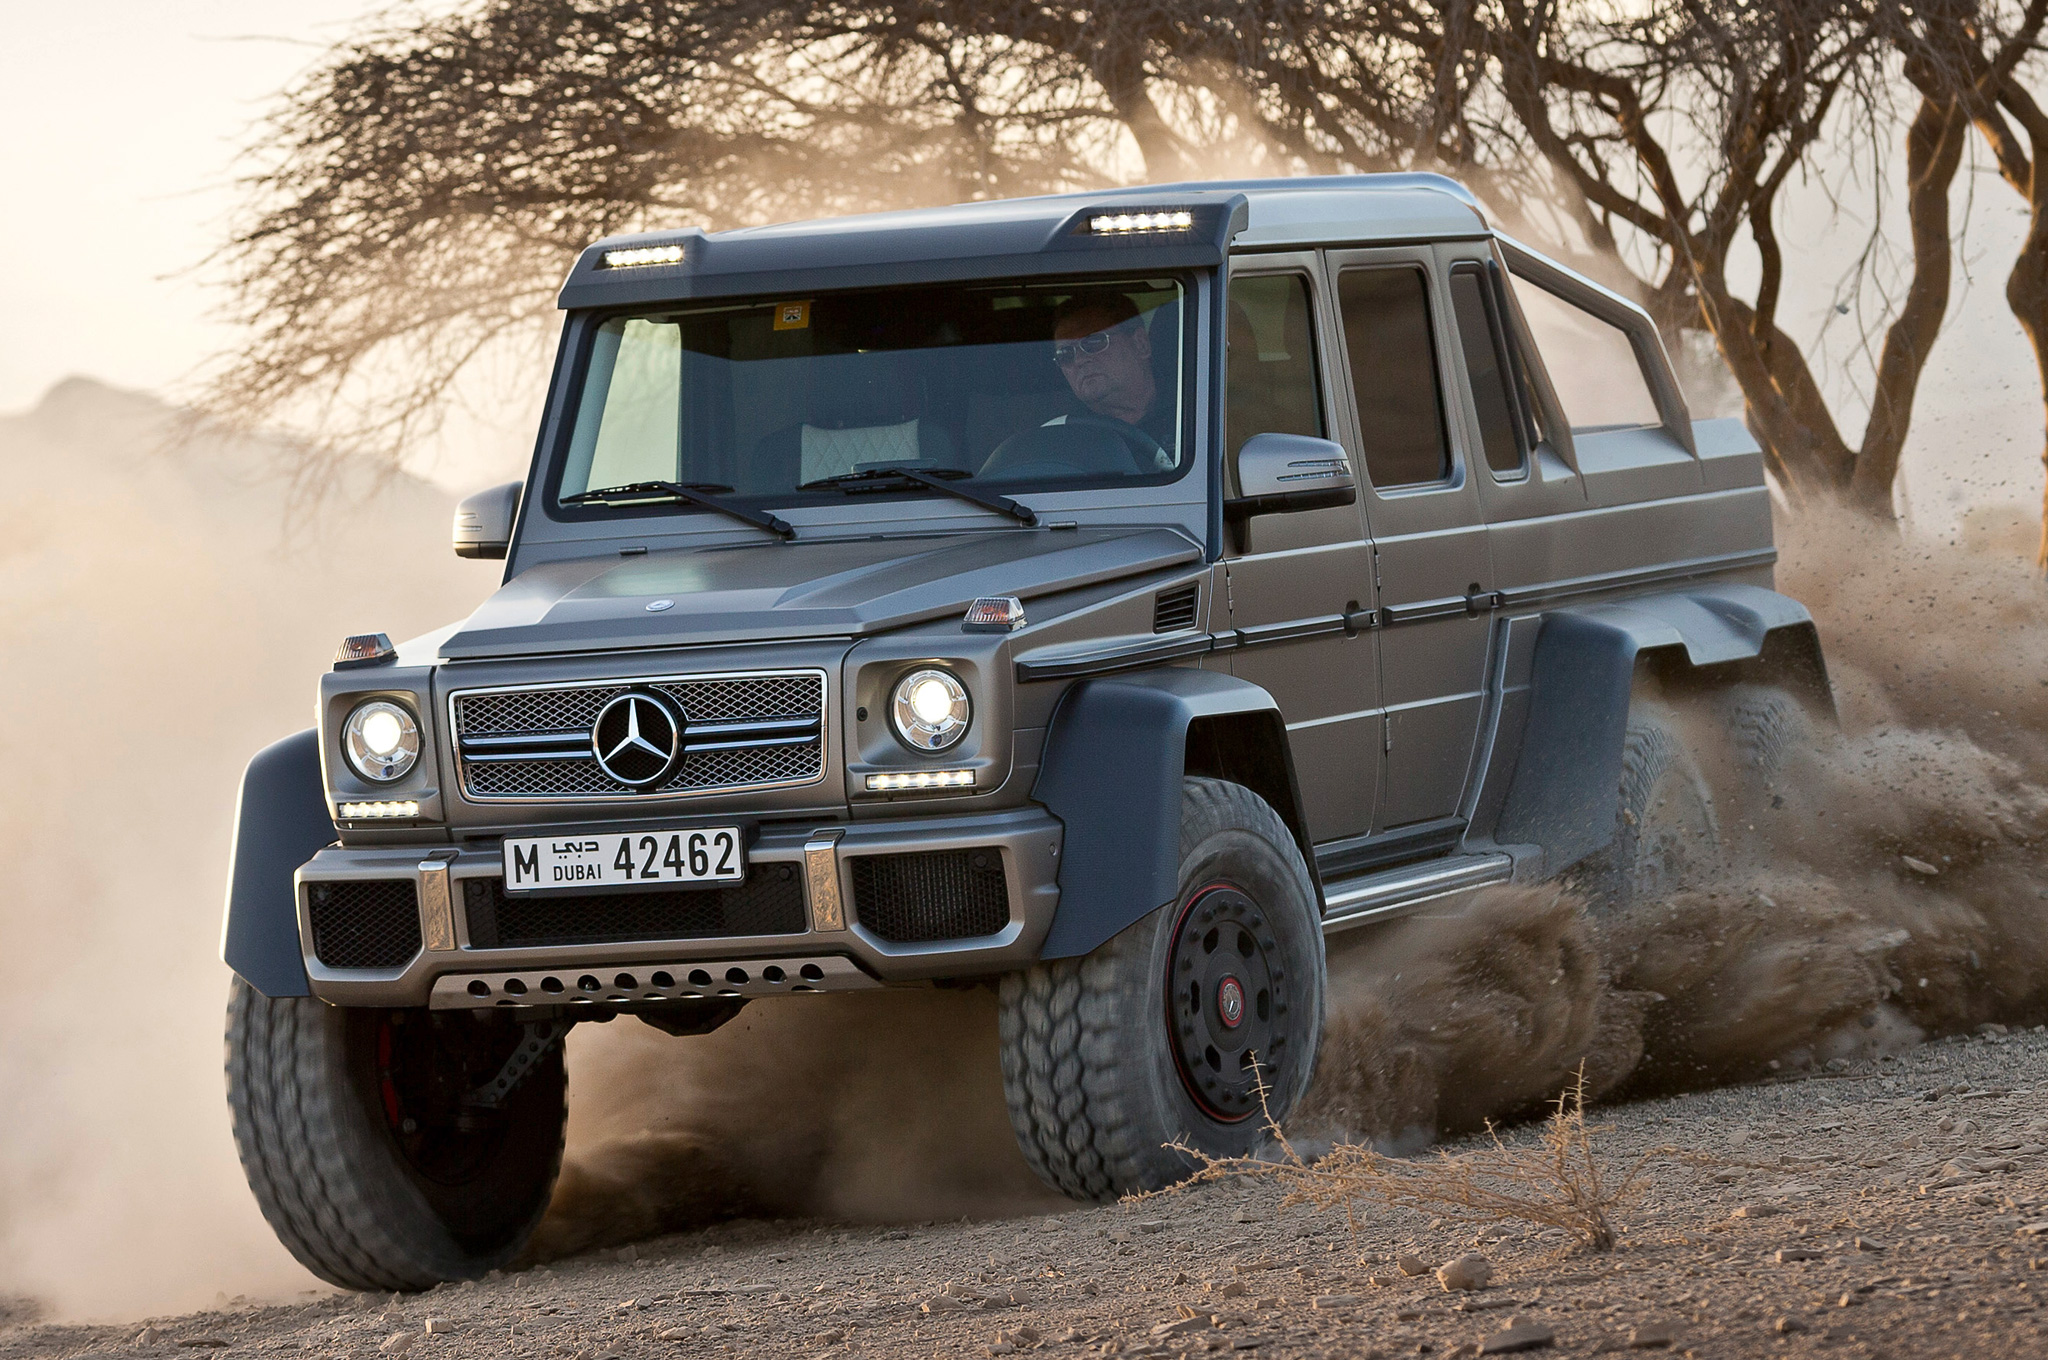 Mercedes Benz G63 Amg 6x6 To Cost 600 000 In Germany Motortrend